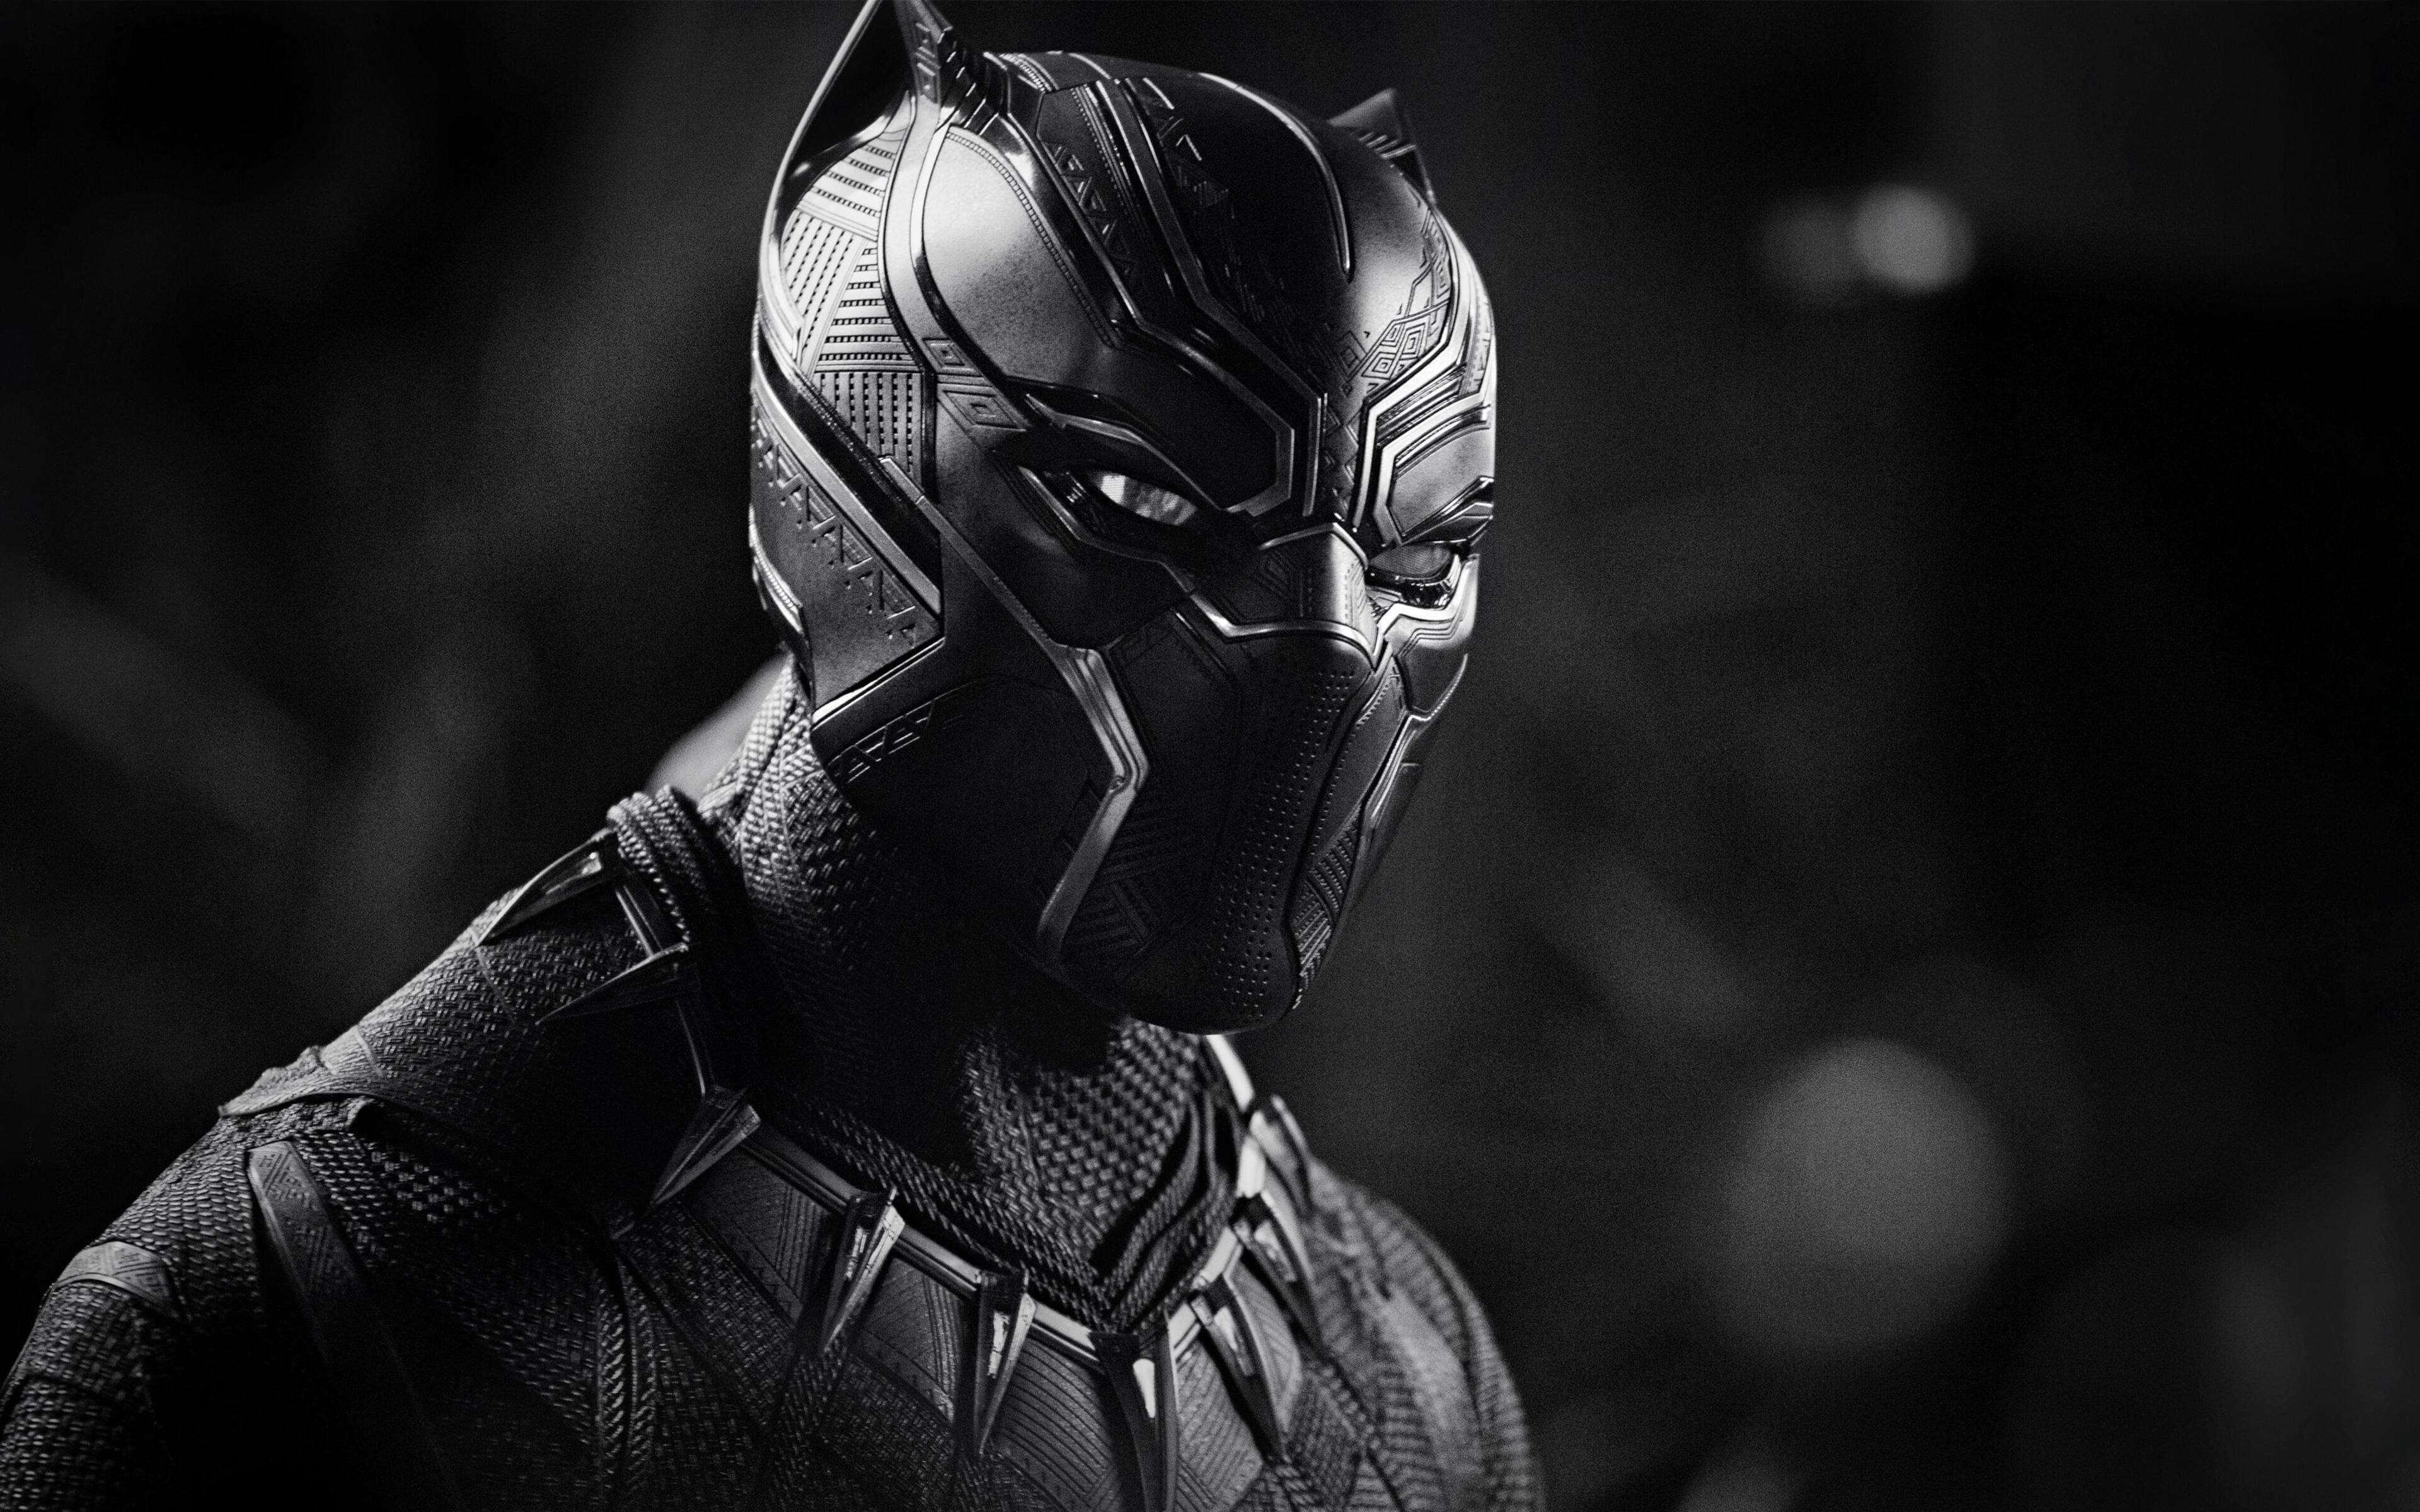 black-panther-monochrome-4k-19.jpg